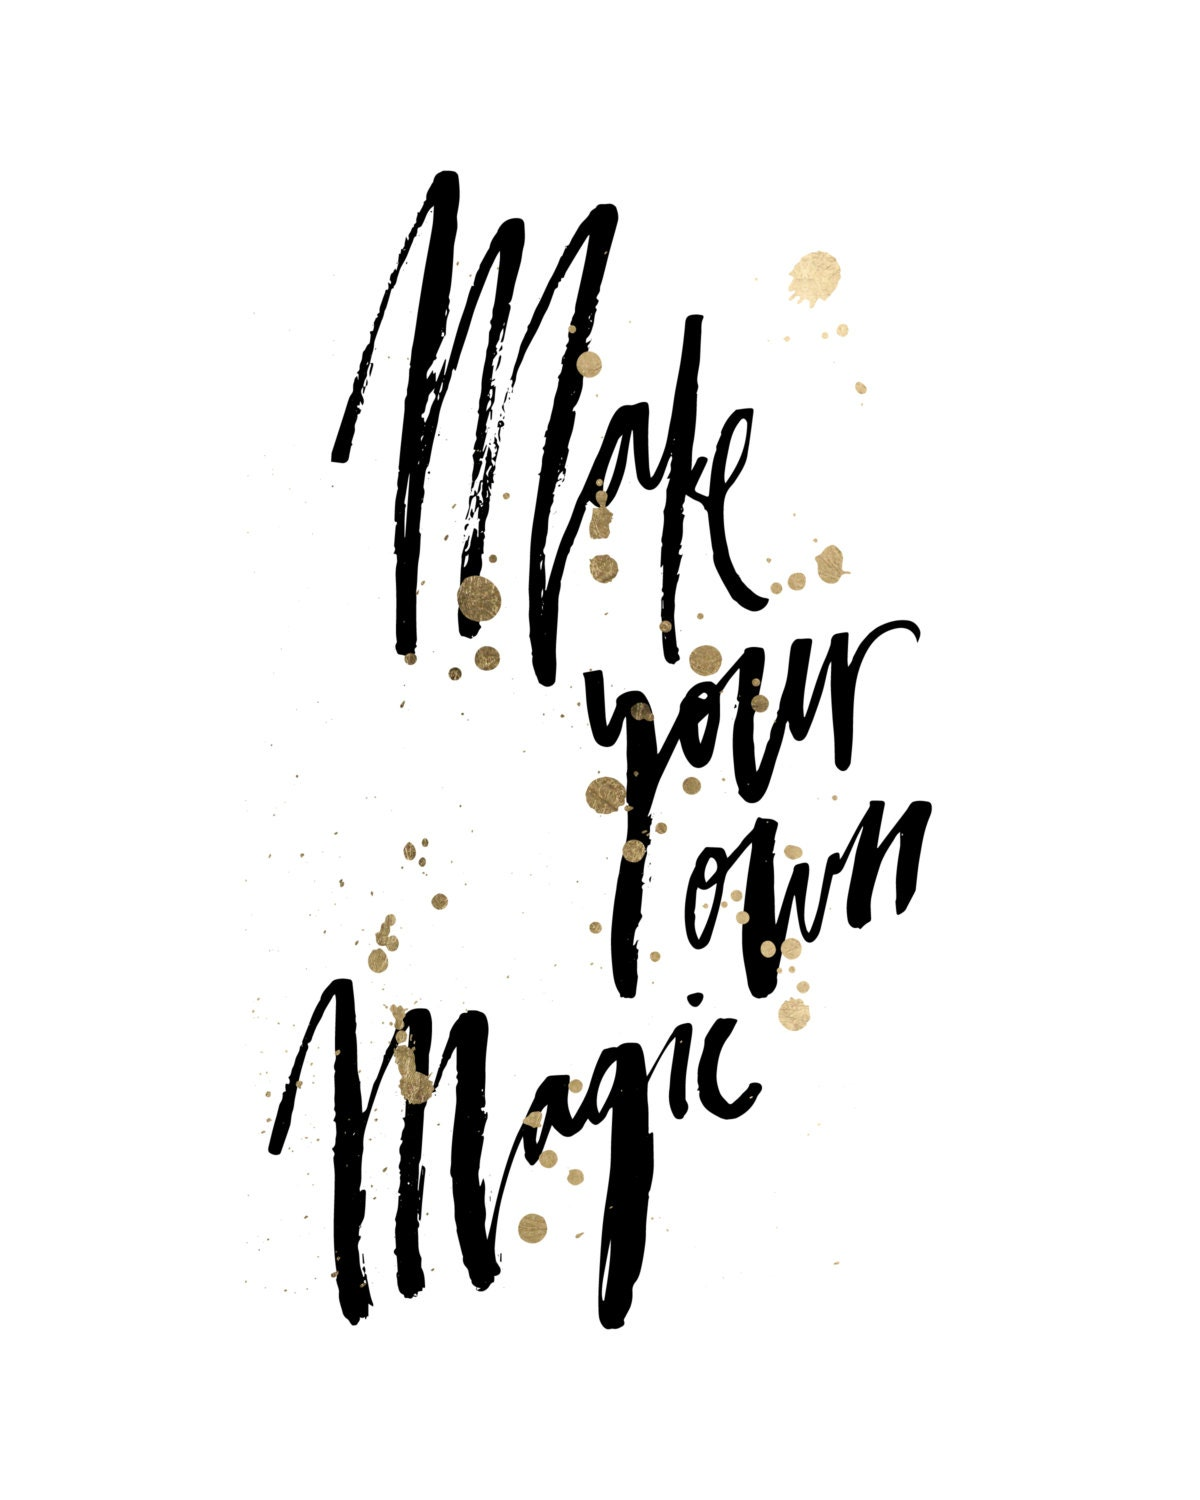 Make Your Own Magic Handwritten Handlettered By Planeta444